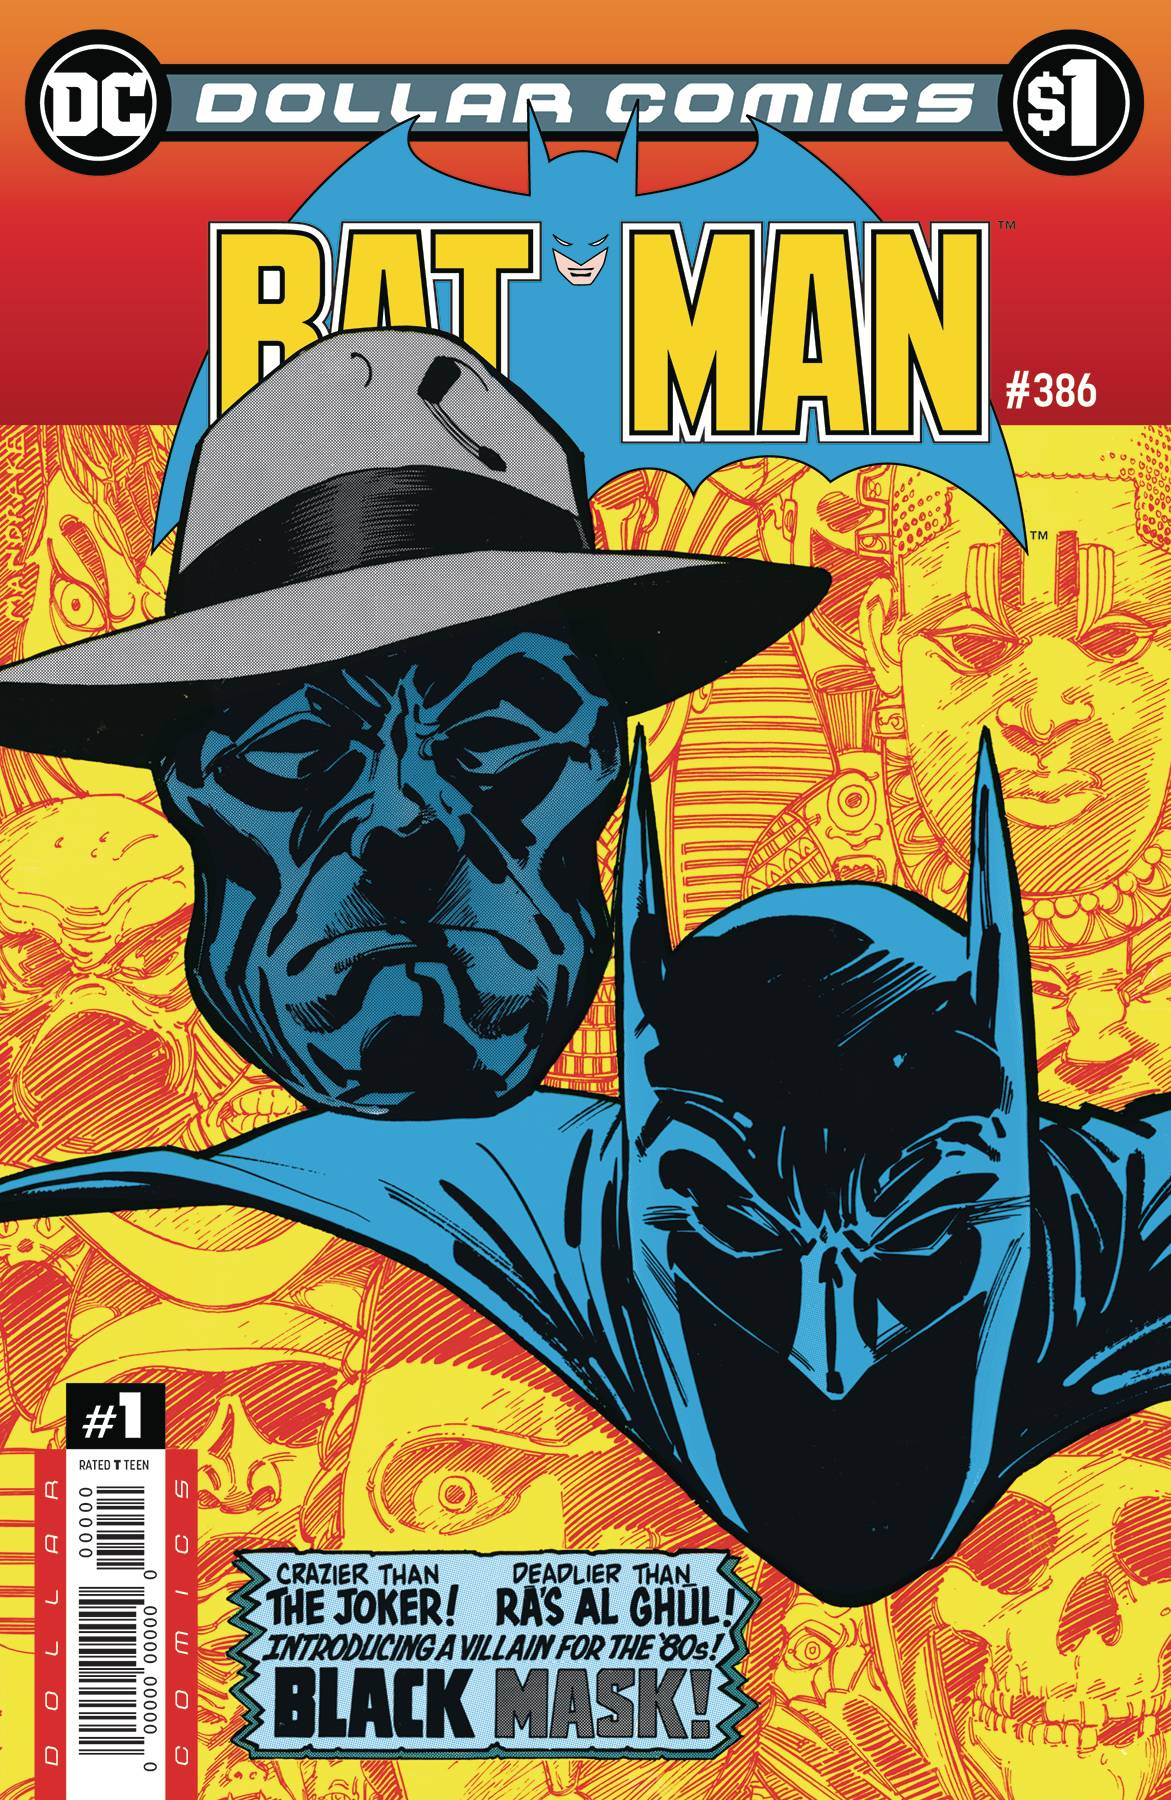 Dollar Comics: Batman #386 (2020)